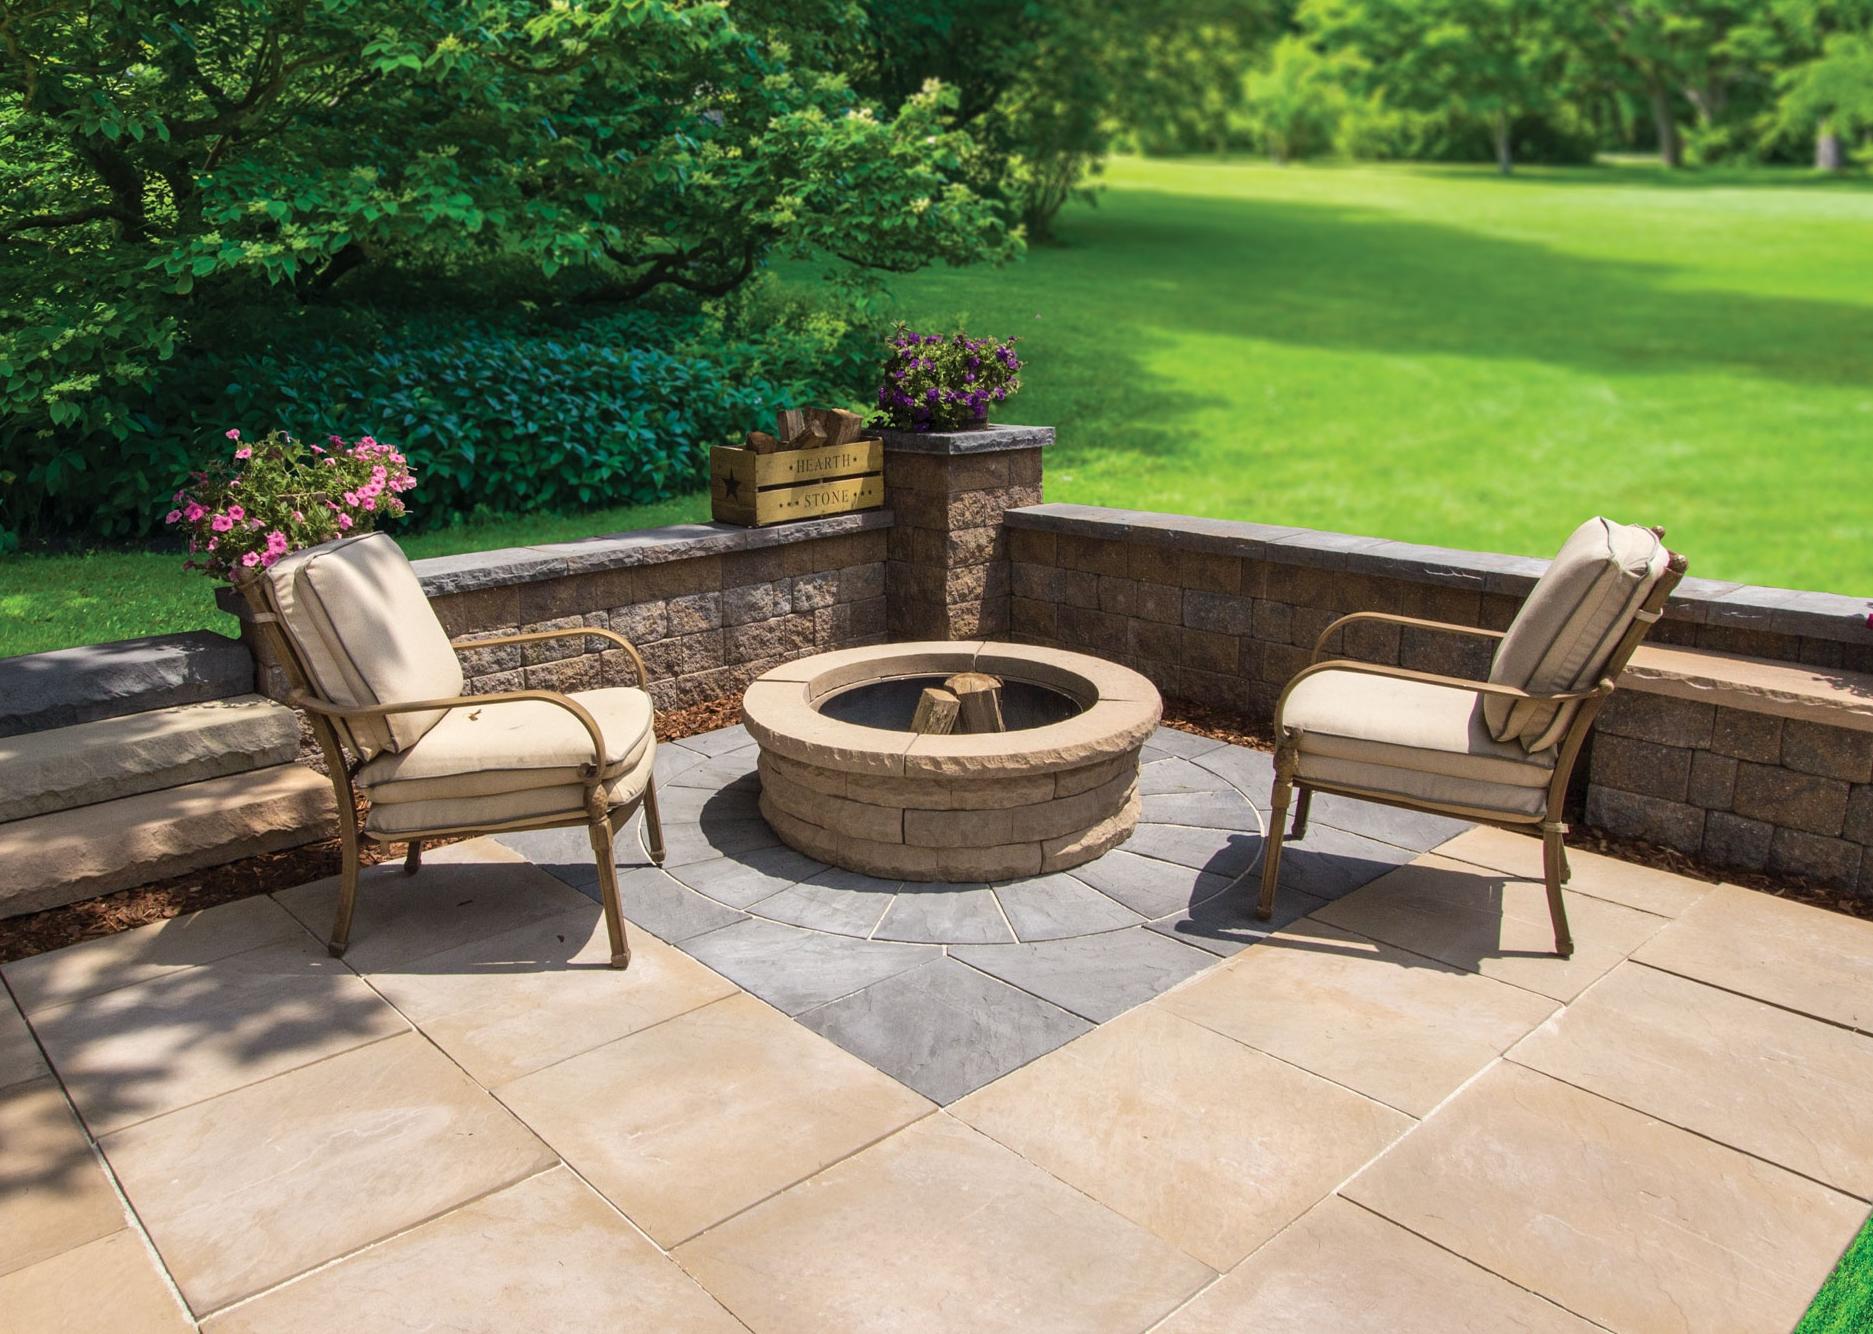 Colonial Round Firepit